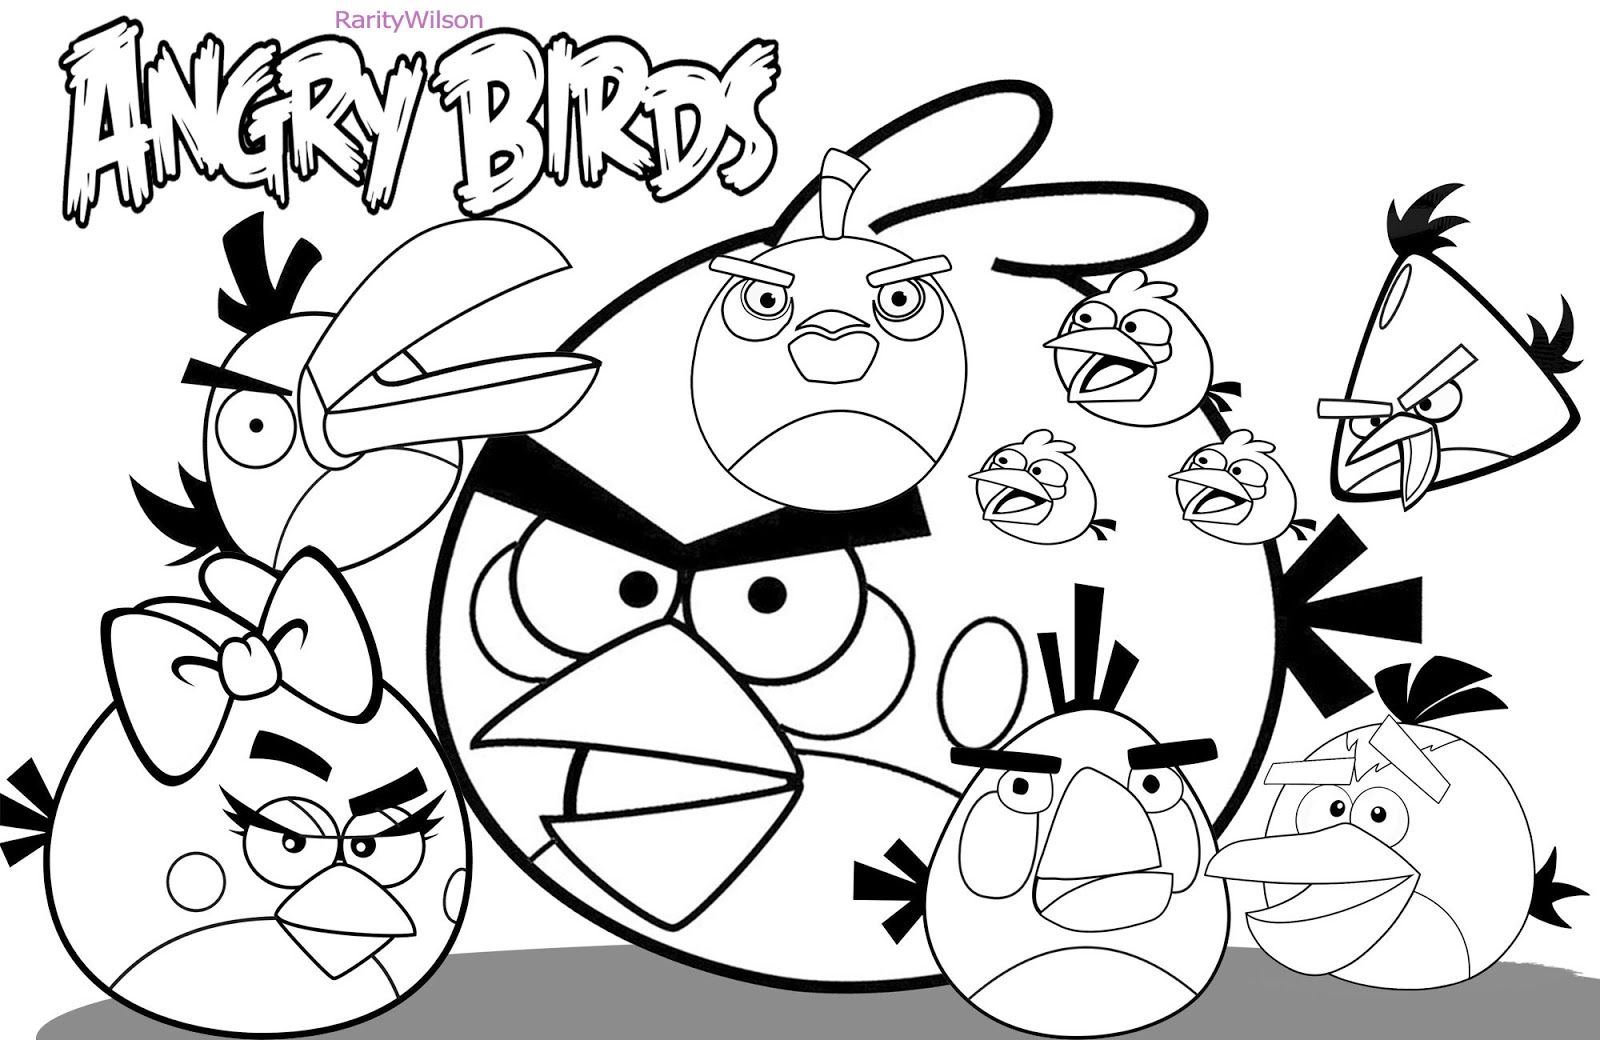 Angry Birds Coloring Pages Jpg 1600 1040 Bird Coloring Pages Coloring Pages Coloring Books